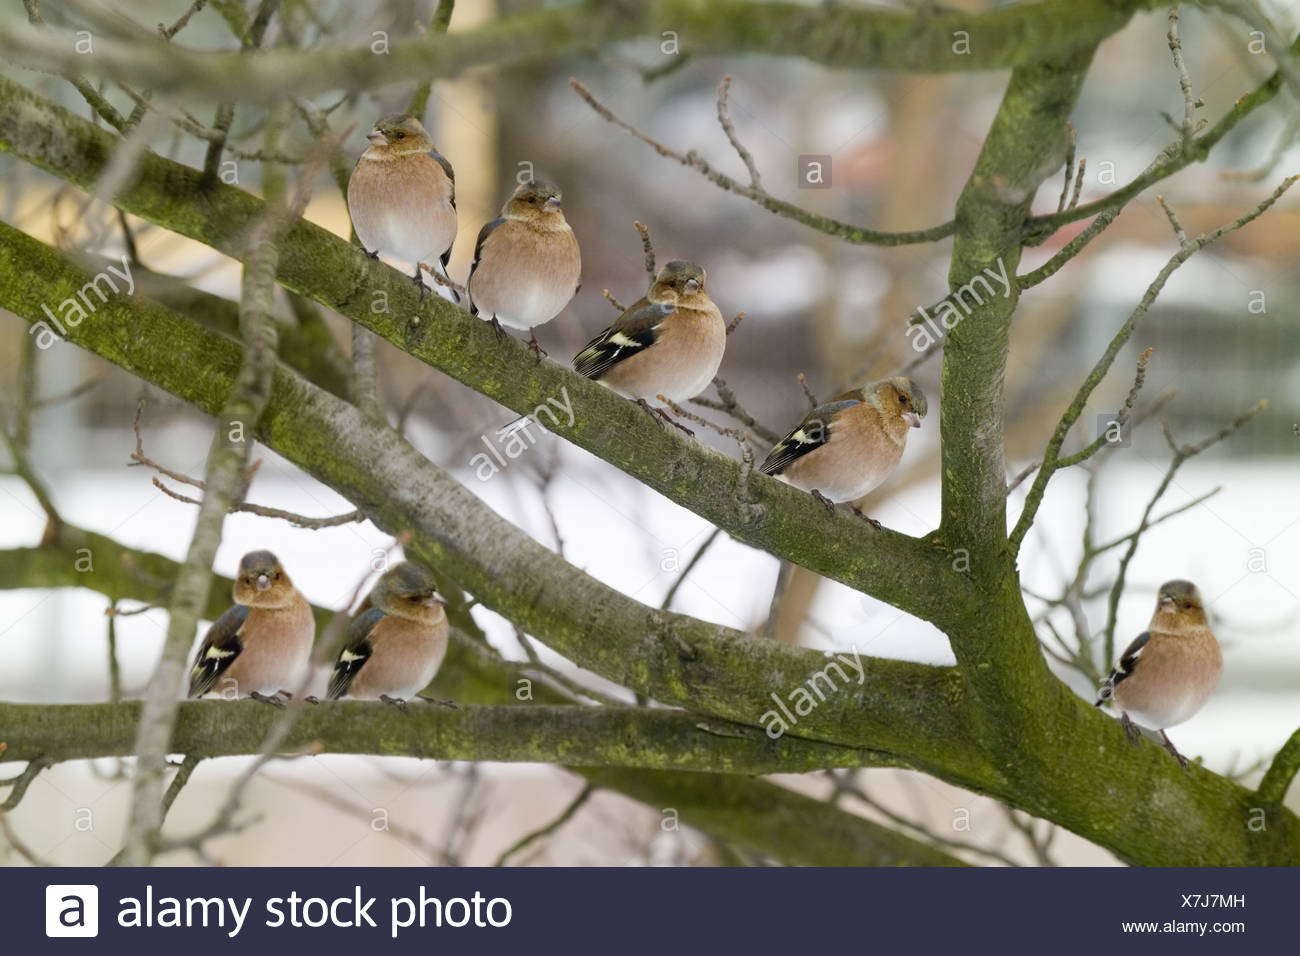 Tree  branches  chaffinches  Fringilla coelebs - Stock Image